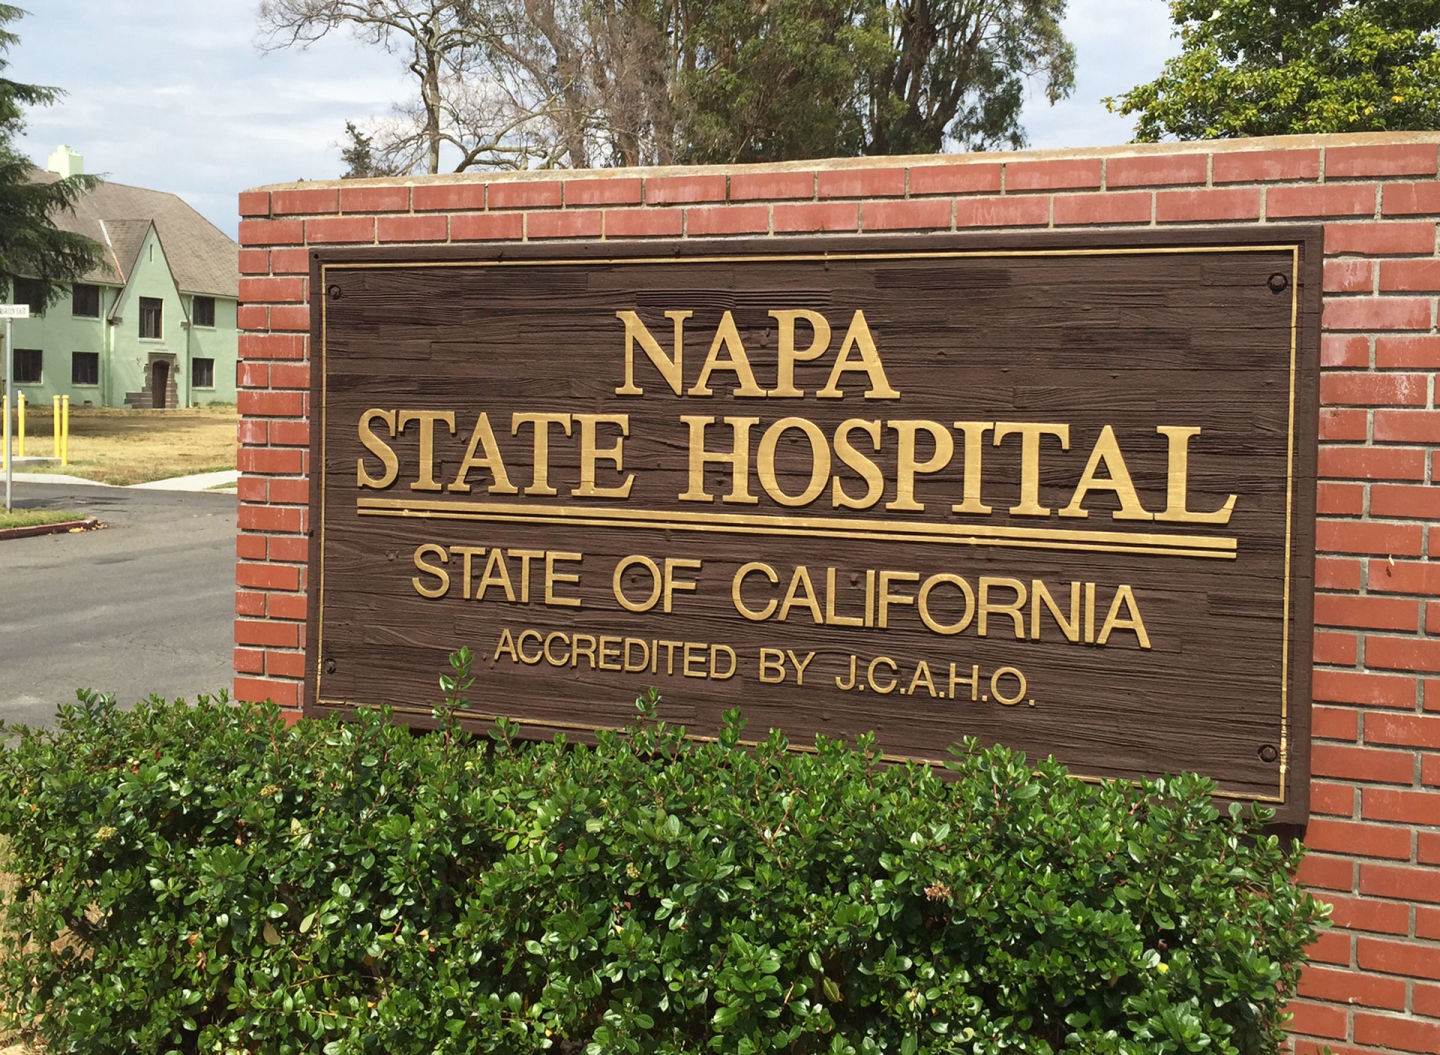 A sign at the entrance of Napa State Hospital.